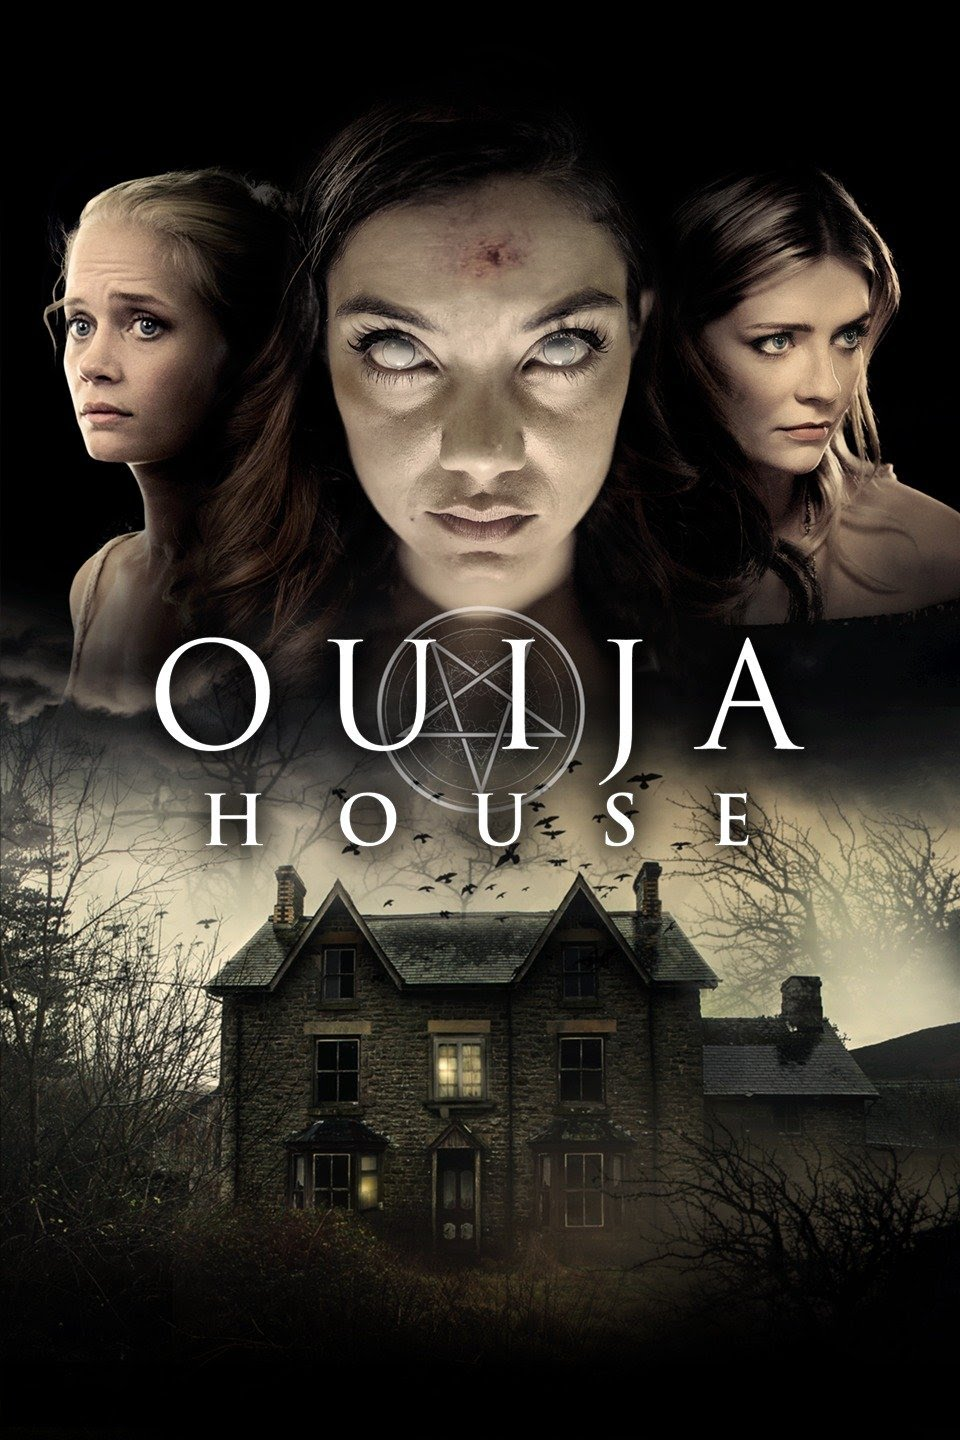 Ouija House 2018 Dual Audio Hindi 720p HDRip ESub 900MB Download